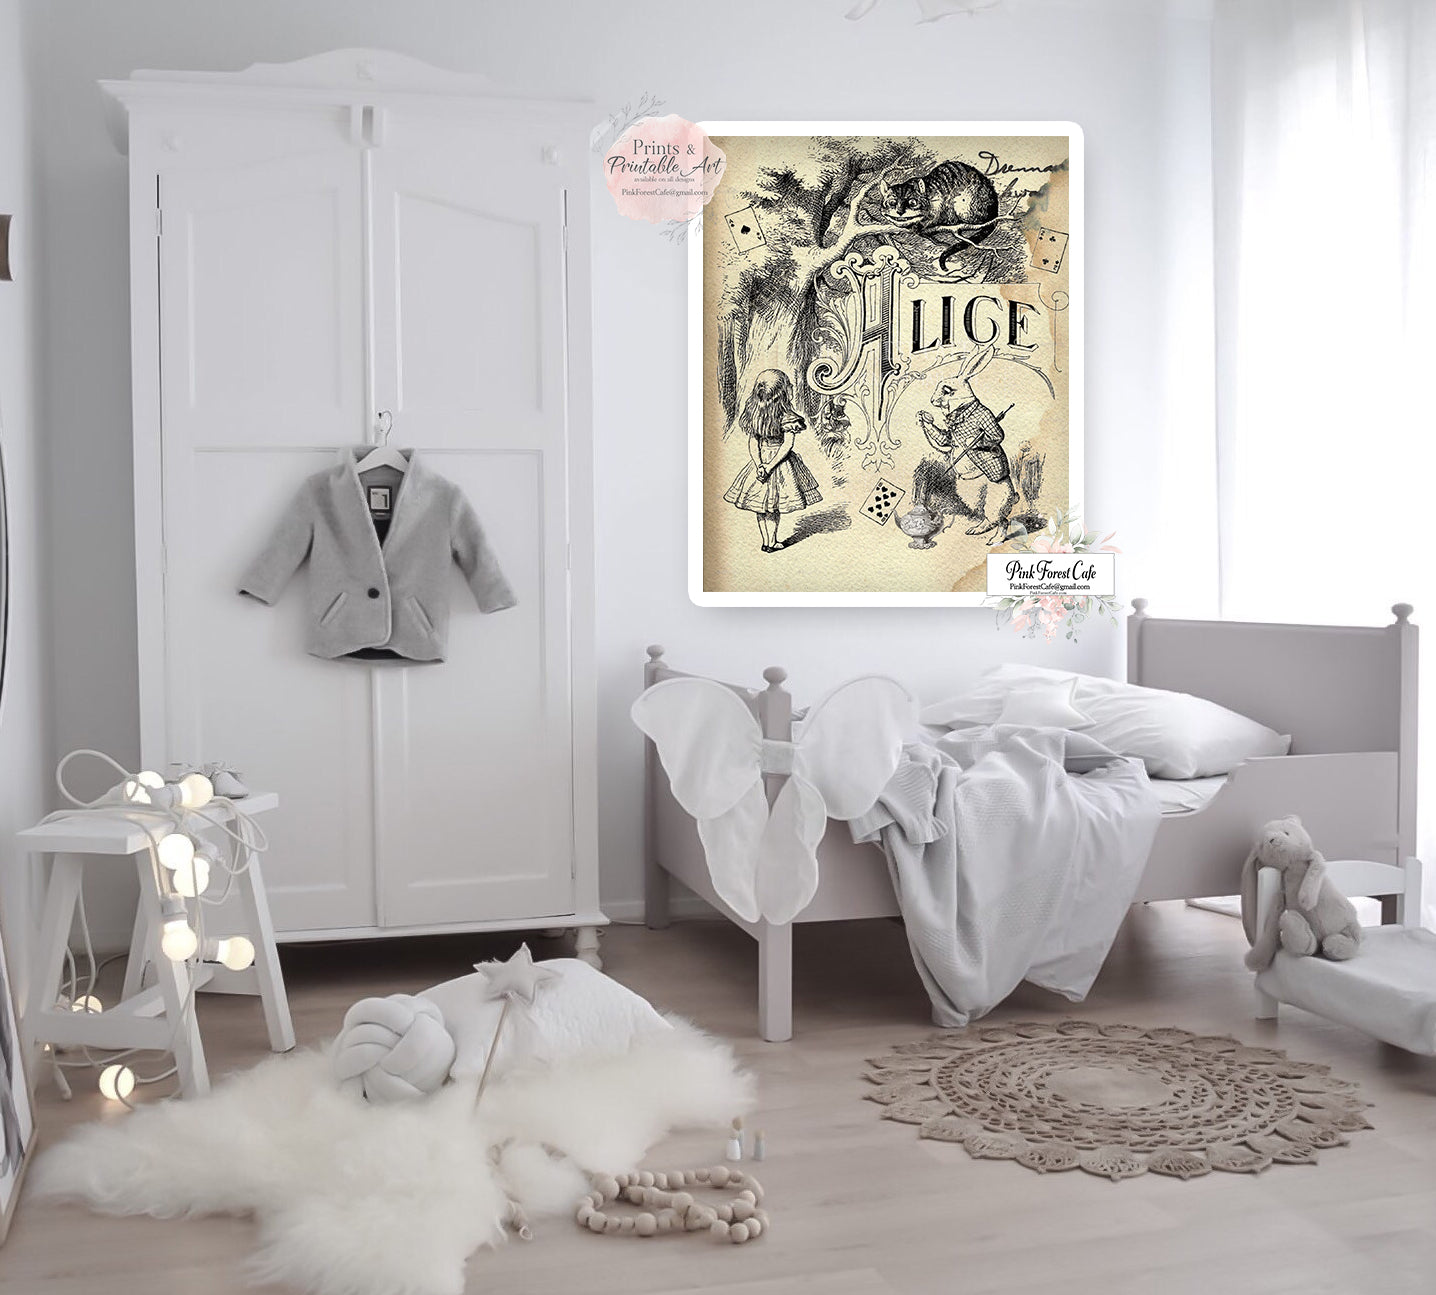 Alice In Wonderland Wall Art Print Vintage White Rabbit Cheshire Cat N Pink Forest Cafe